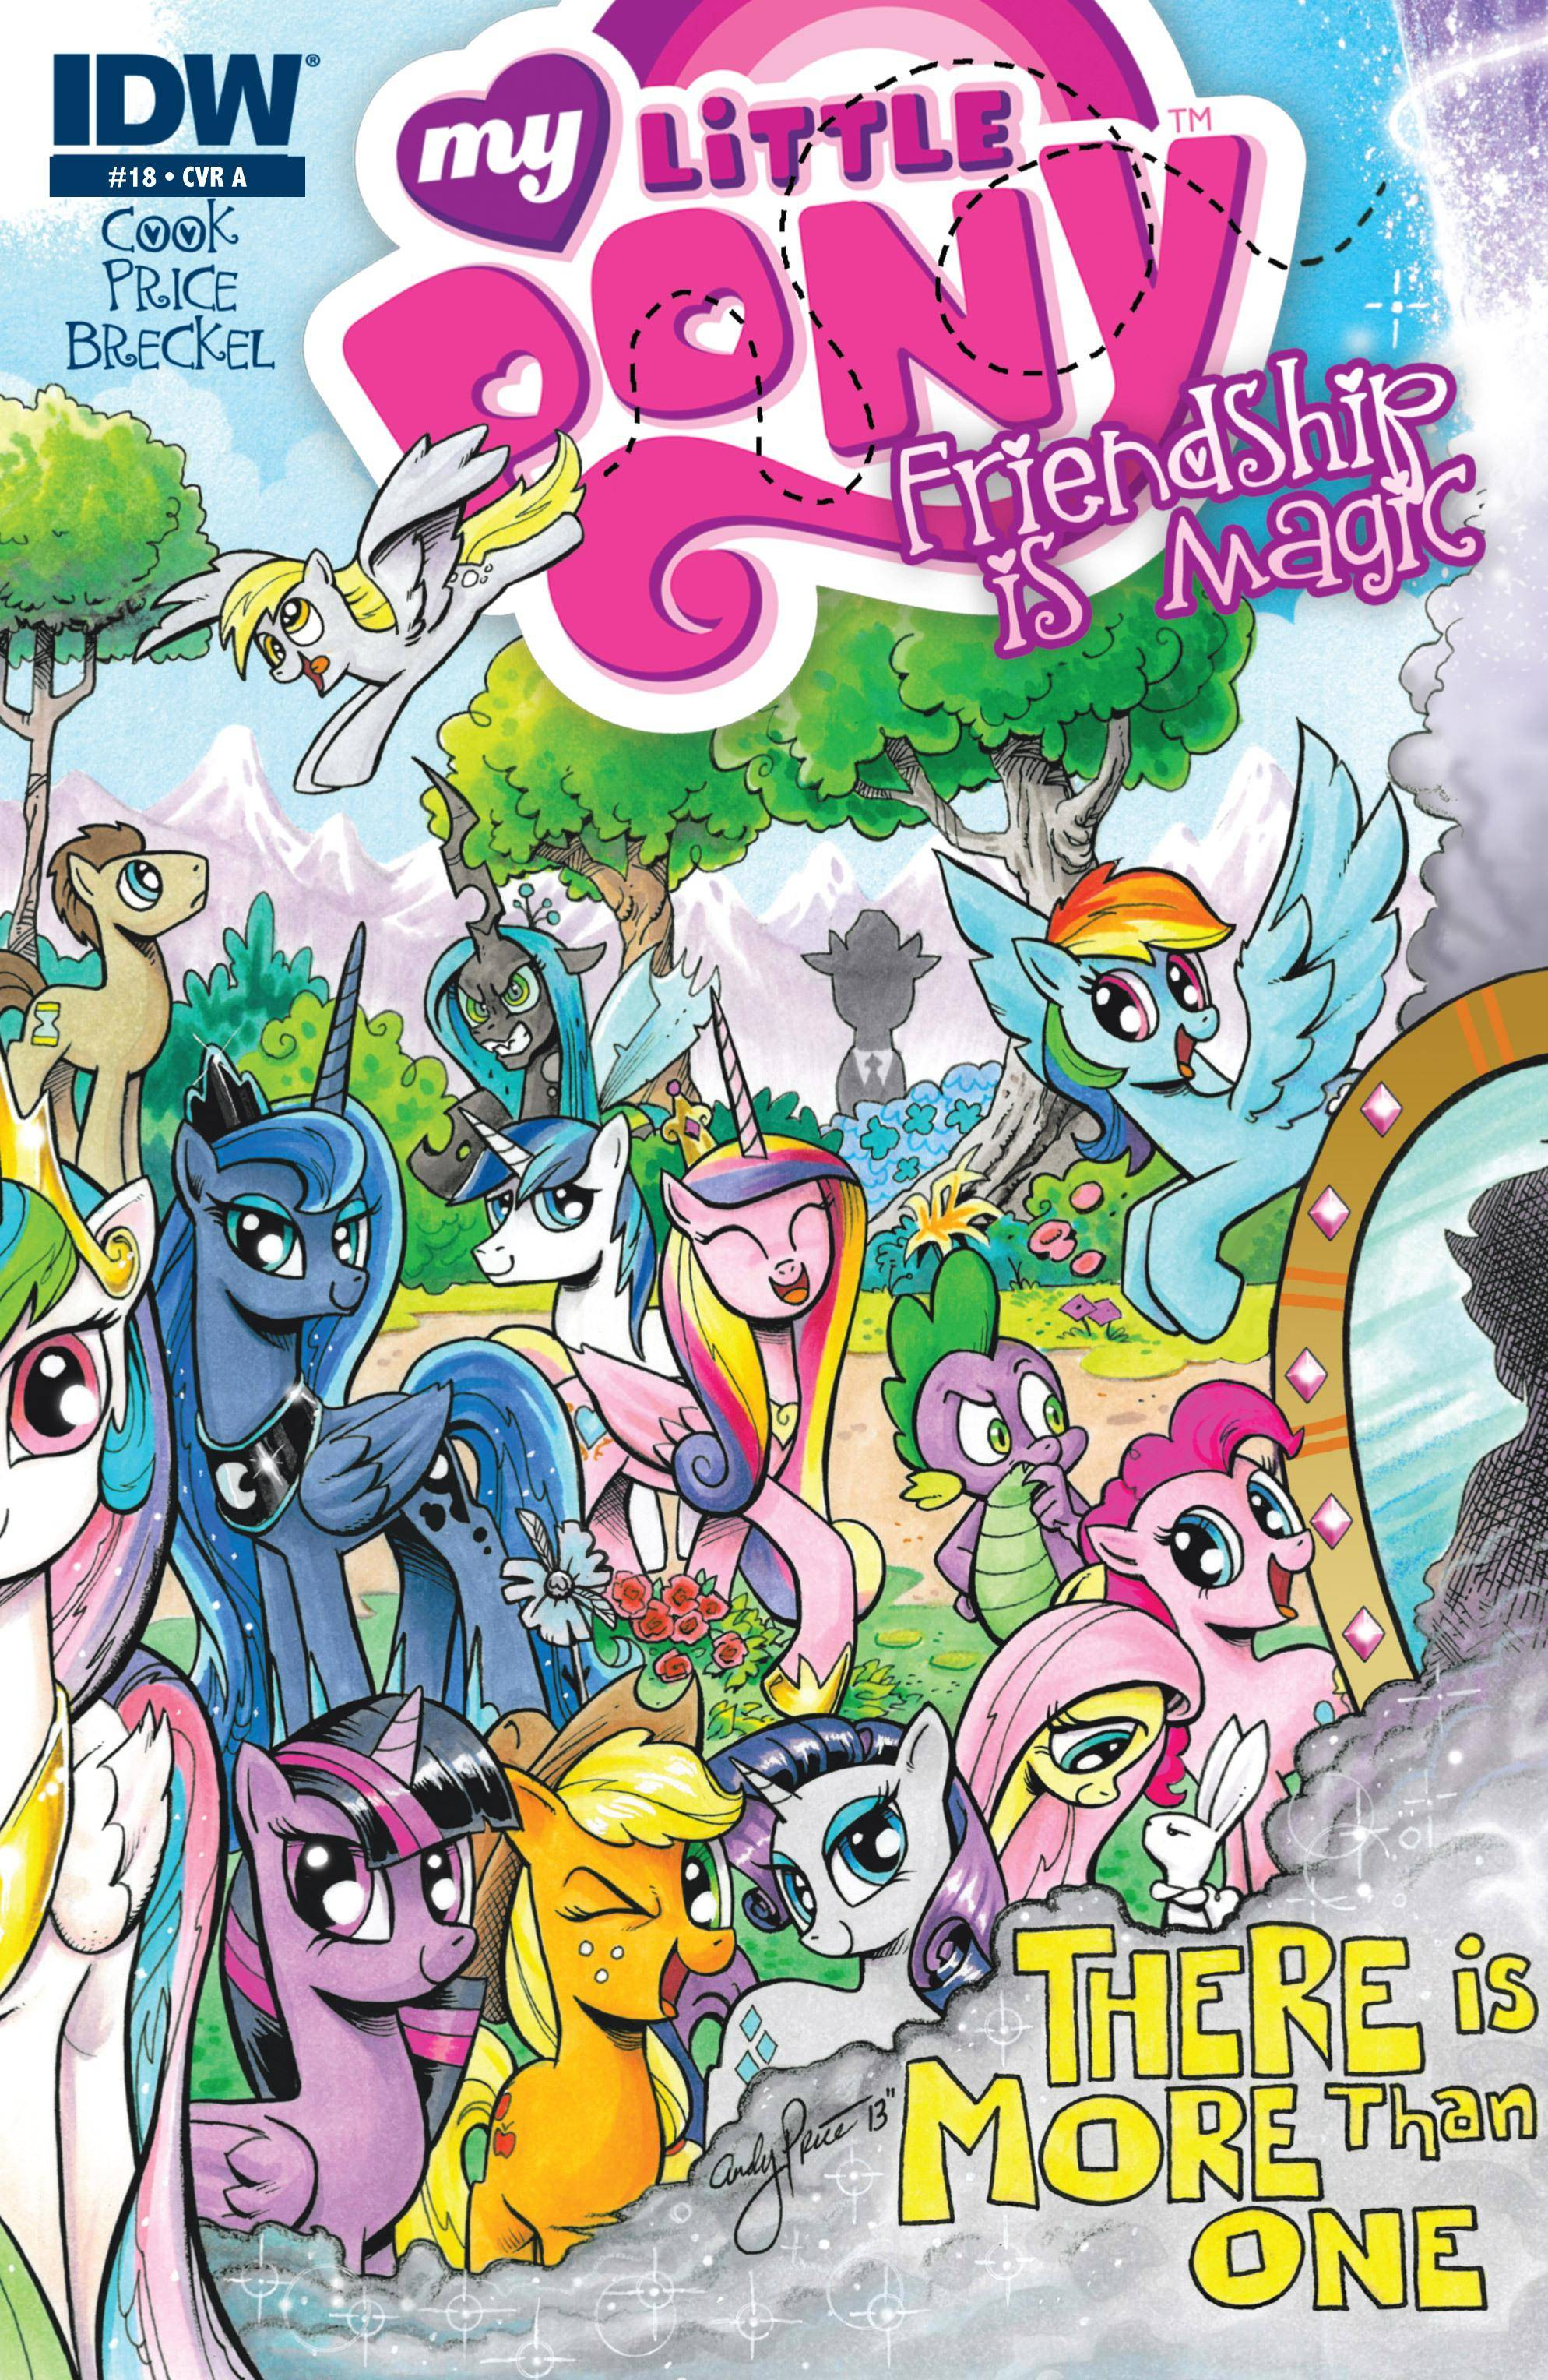 My Little Pony - Friendship Is Magic 018 2014 2 covers digital